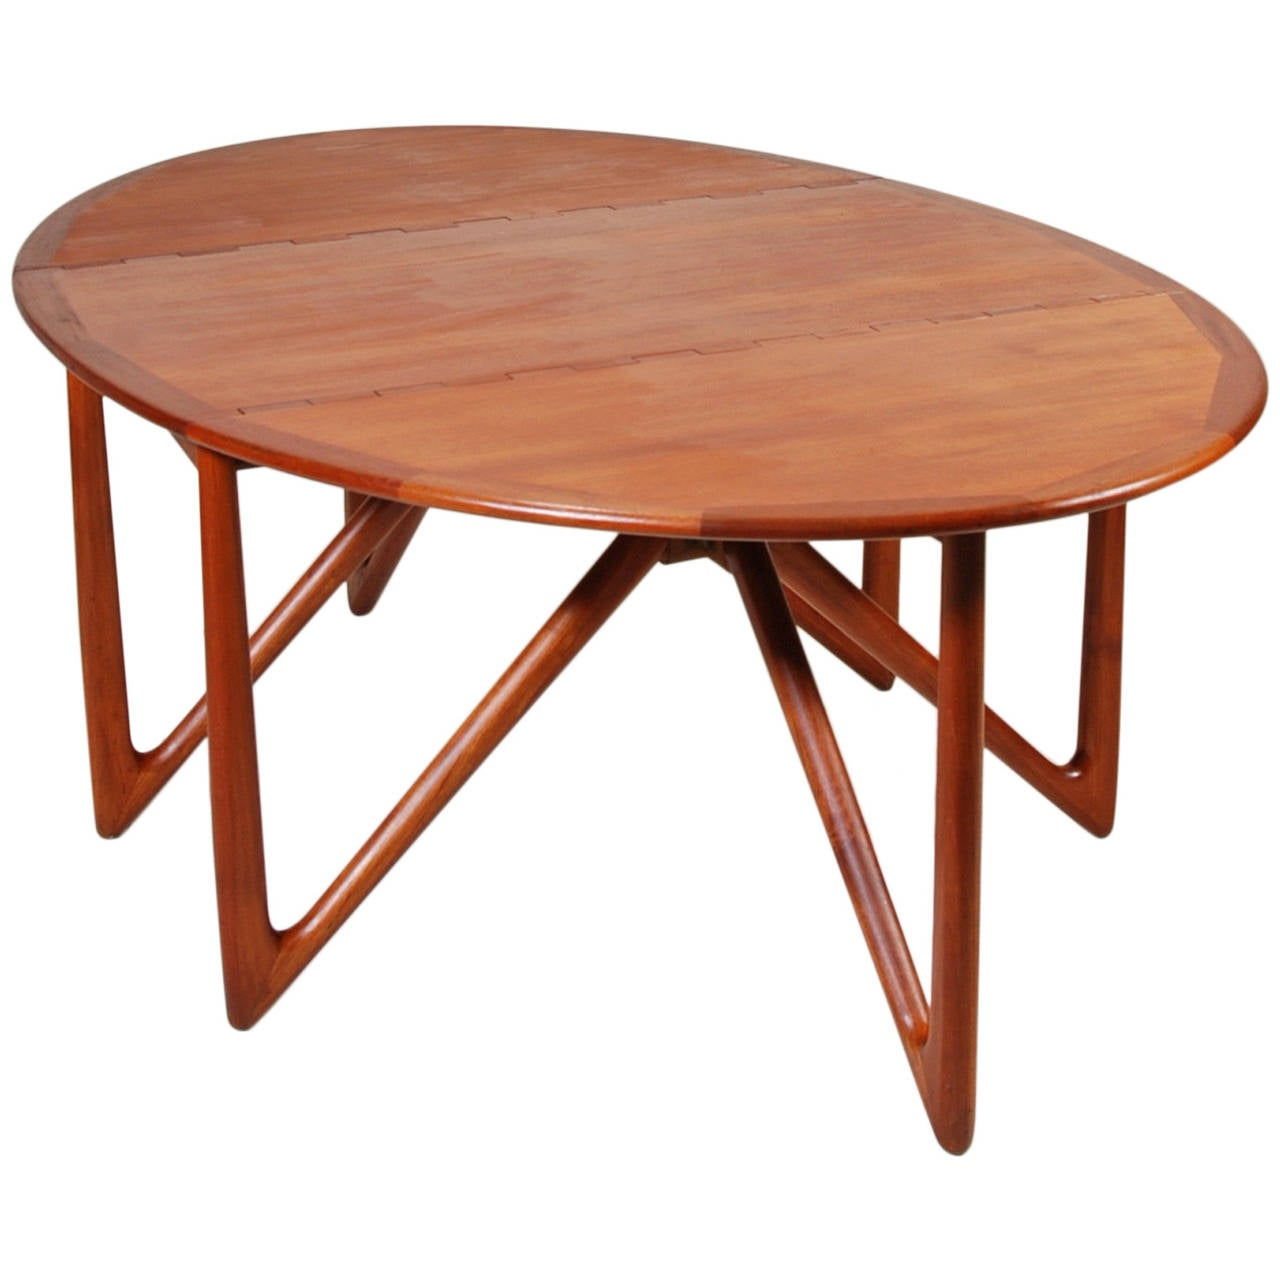 mid century modern dining table no 304 in teak by niels kofoed at 1stdibs